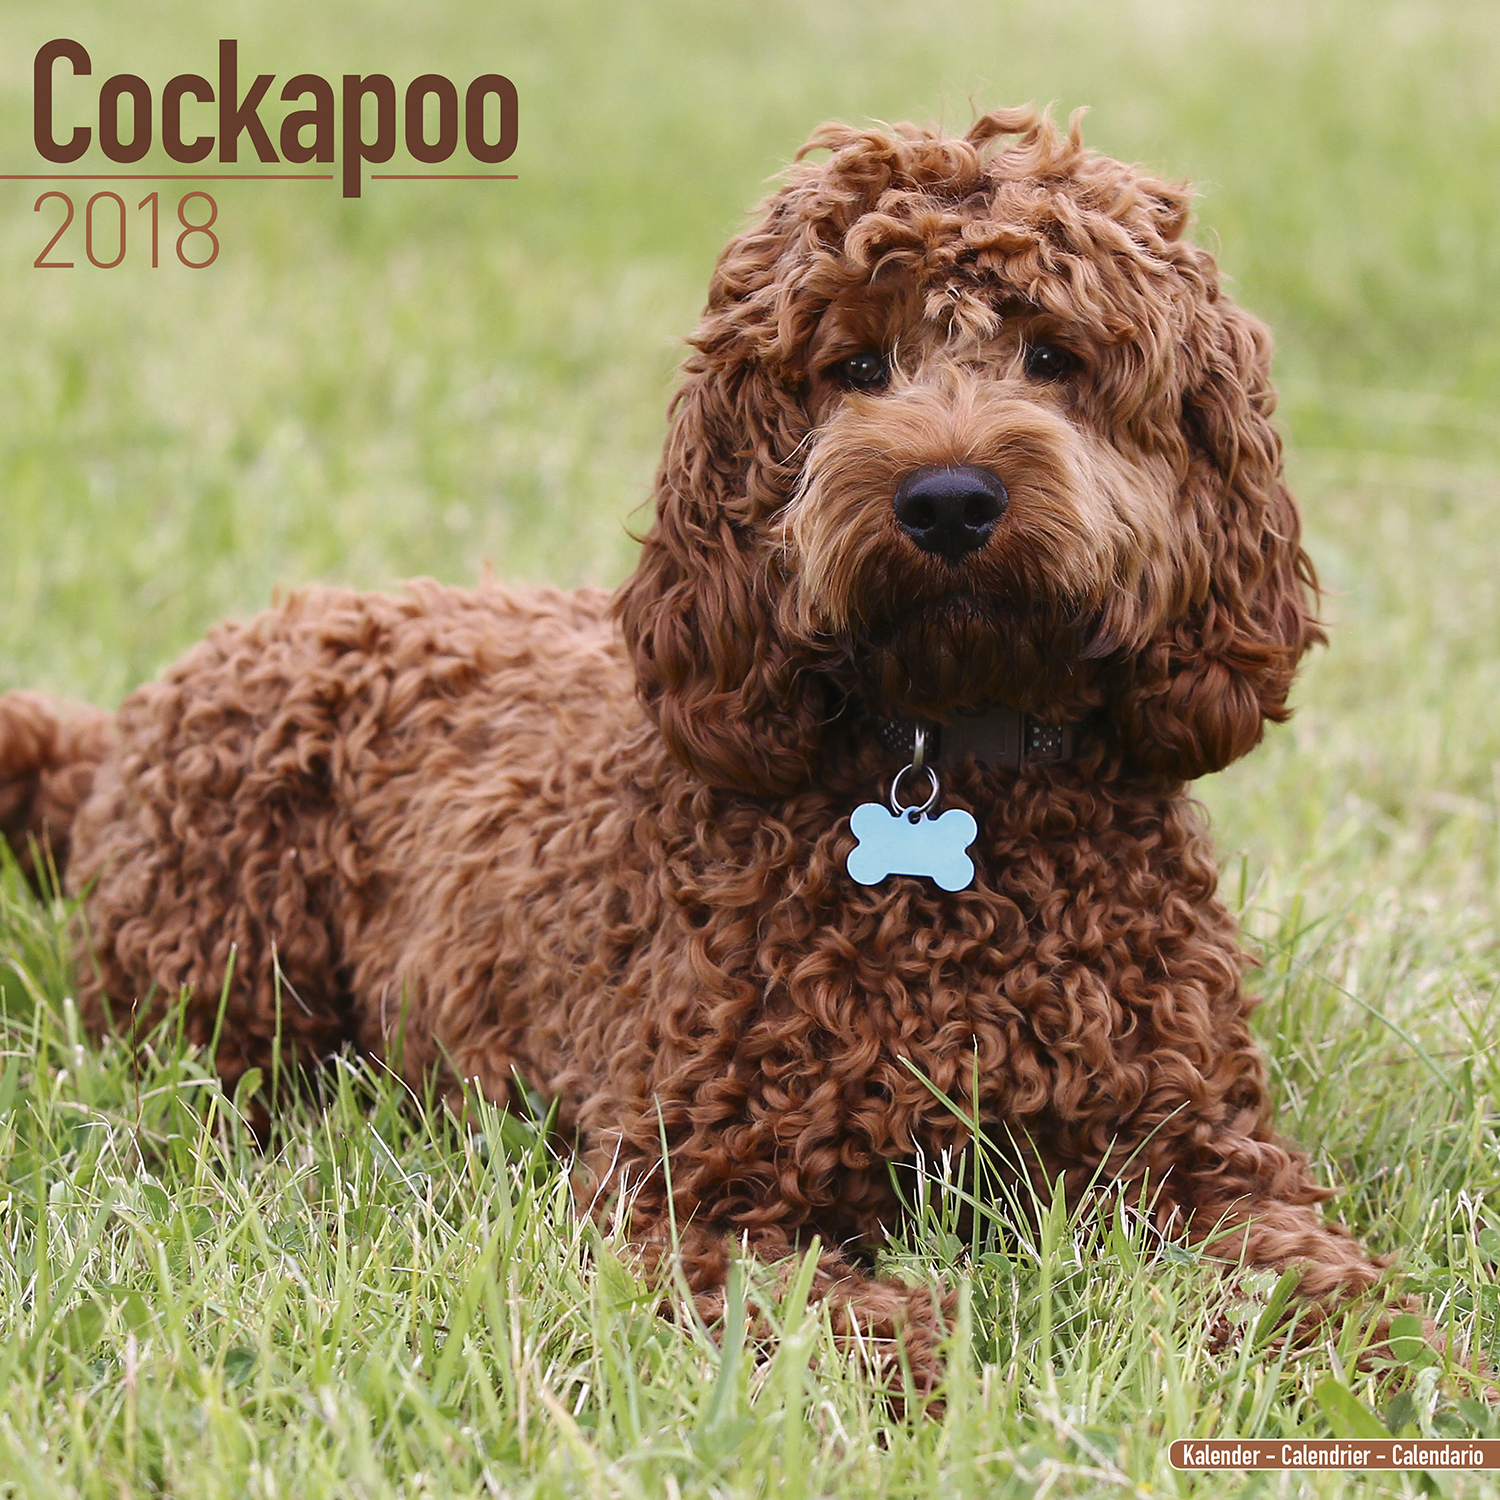 Dog Wall Art Cockapoo Calendar 2018 Pet Prints Inc